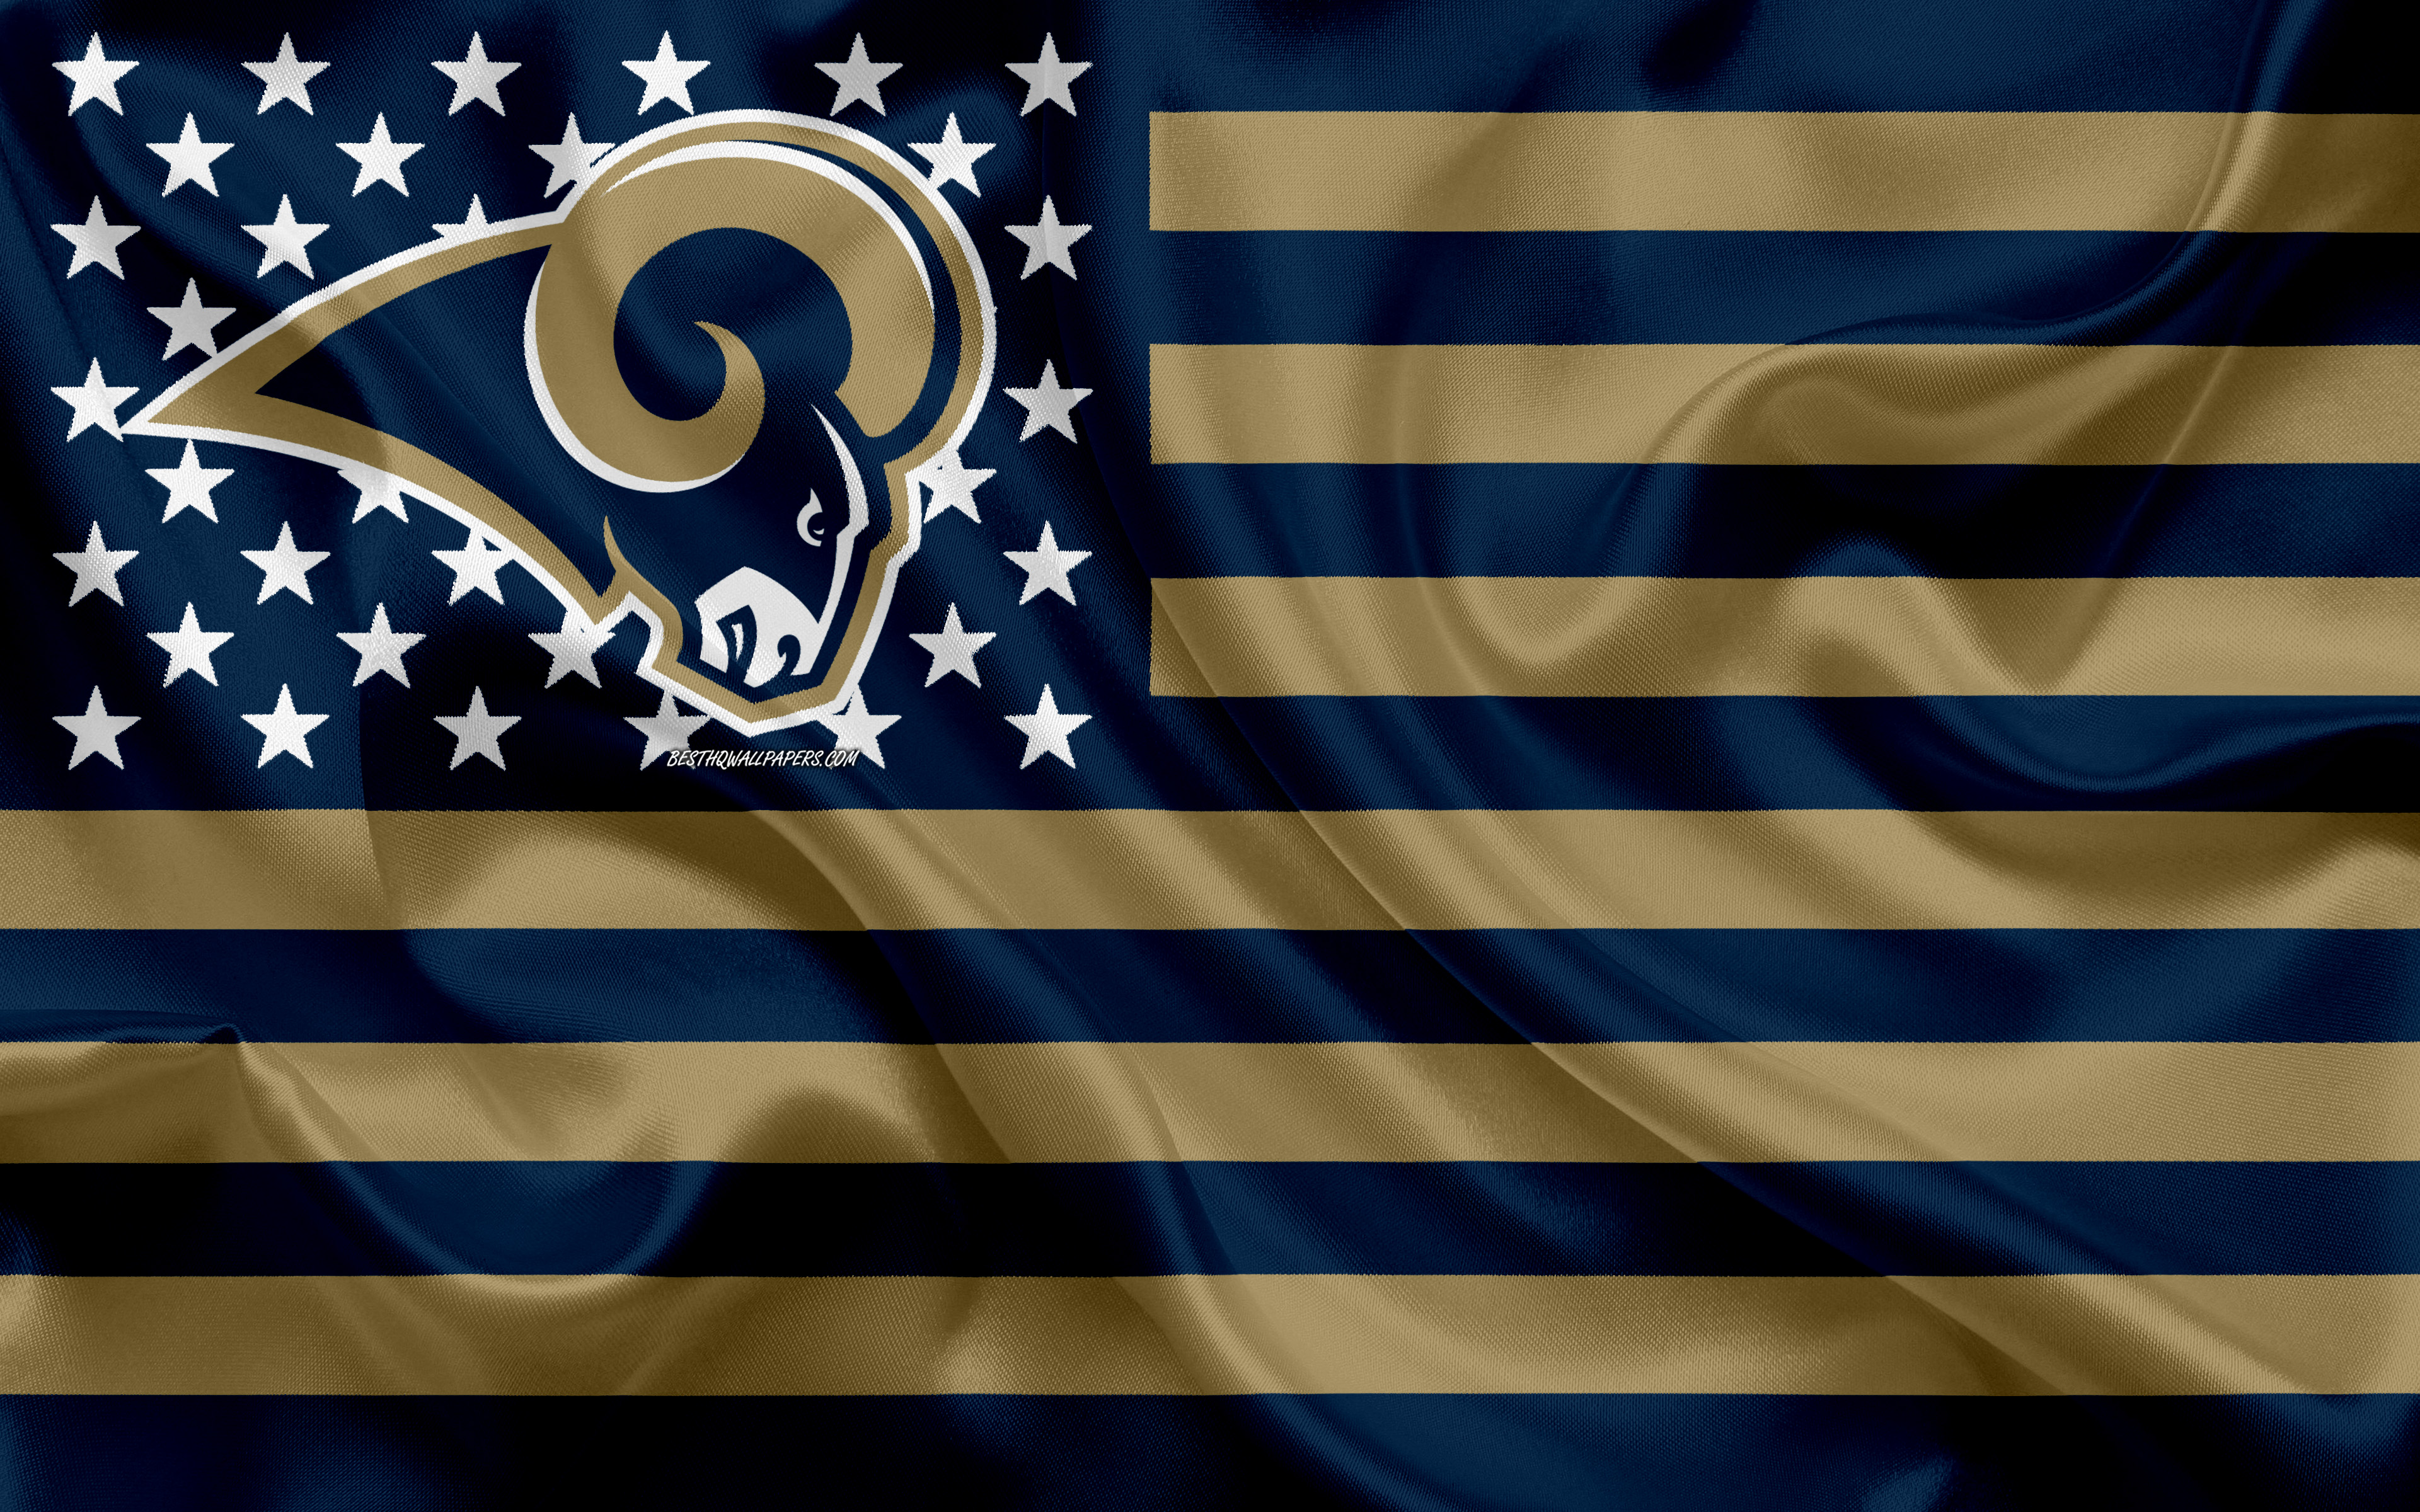 Los Angeles Rams, American football team, creative American flag, blue gold flag, NFL, Los Angeles, California, USA, logo, emblem, silk flag, National Football League, American football